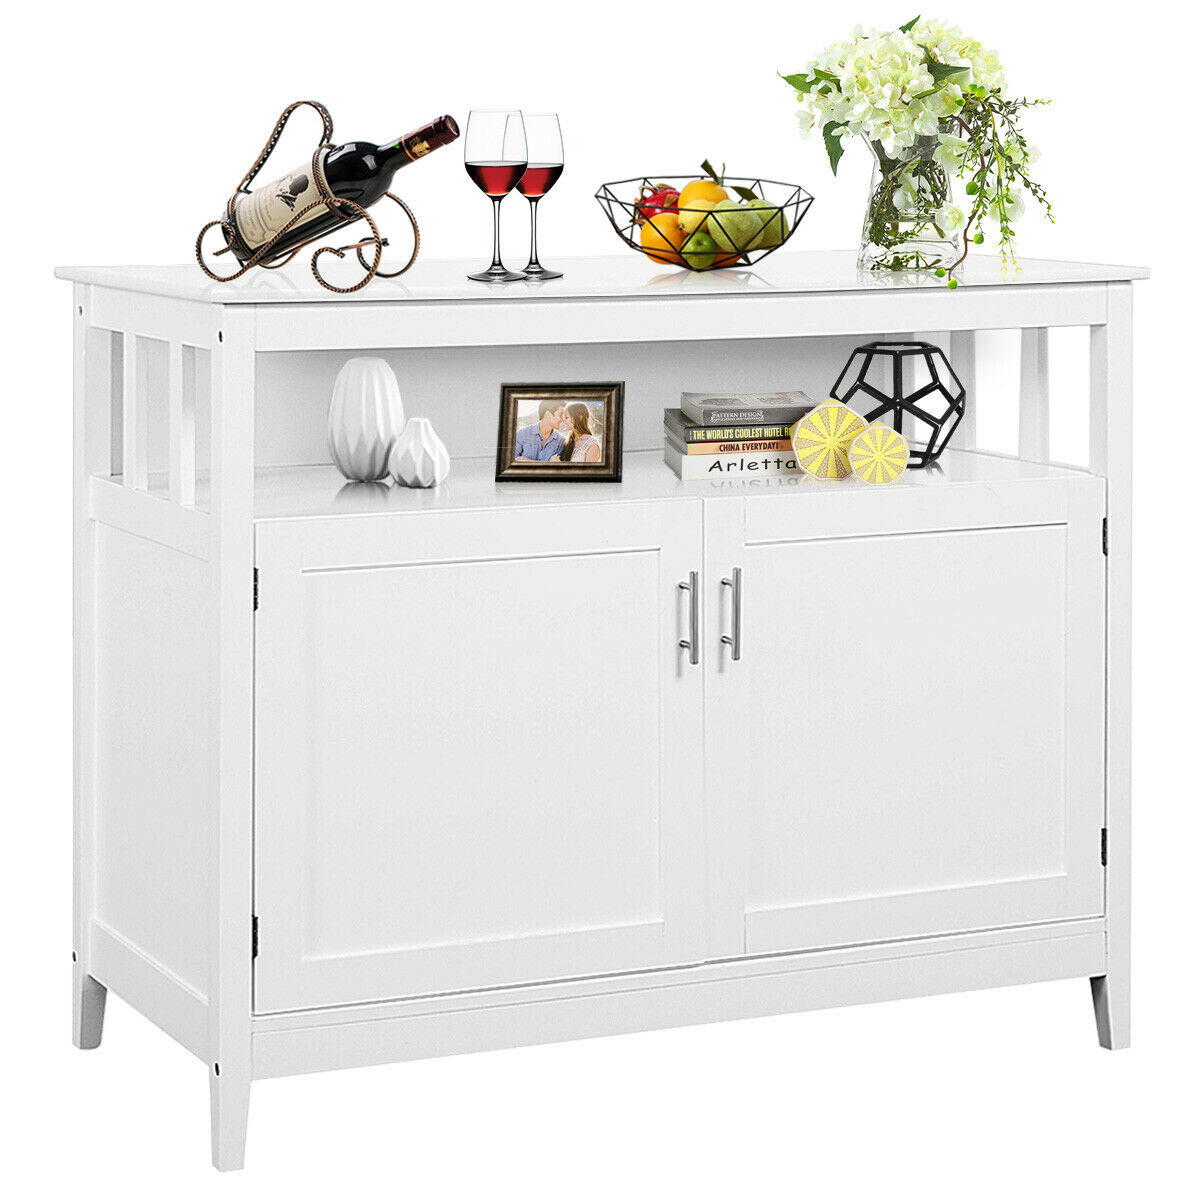 Us 169 19 Costway Modern Kitchen Storage Cabinet Buffet Server Table Sideboard Dining Wood White On Aliexpress